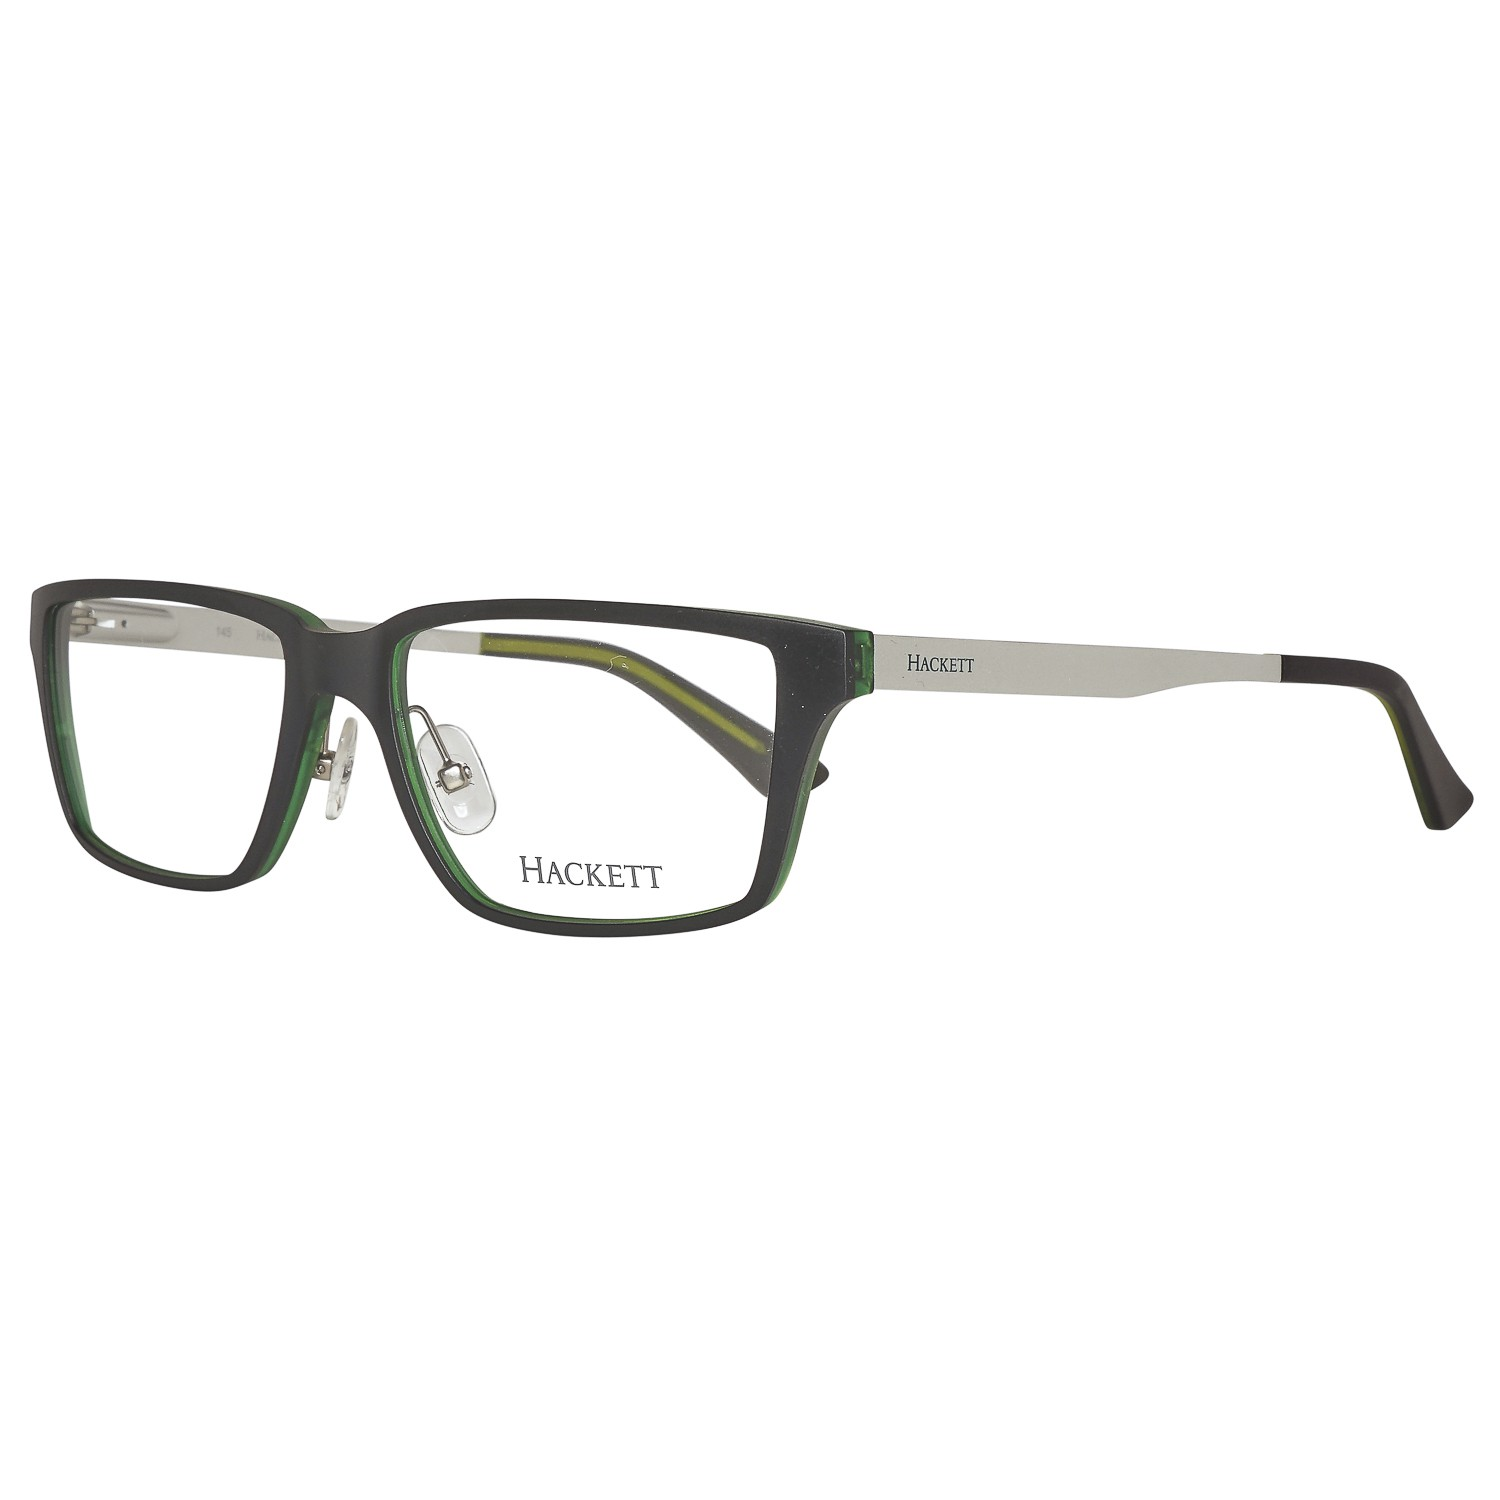 Hackett Optical Frame HEK1155 074 Black